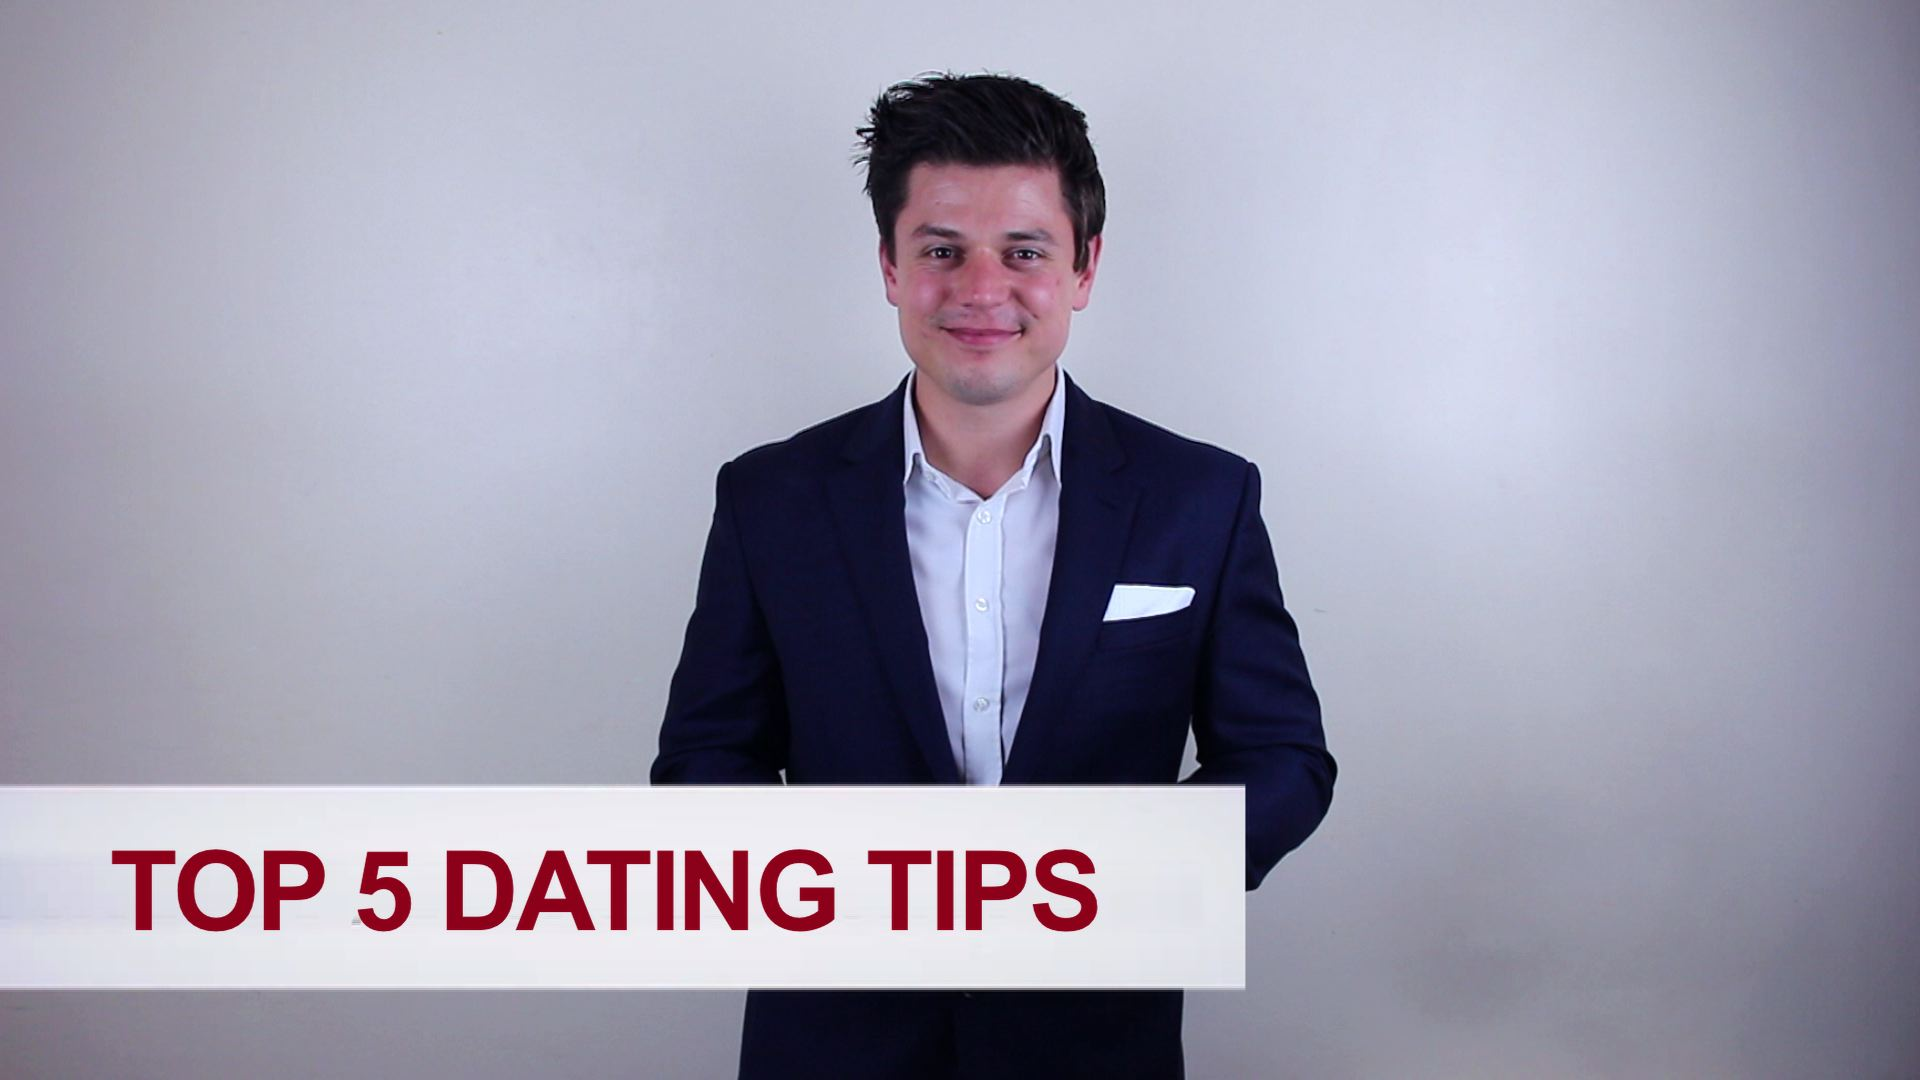 top dating tips The world's #1 authority on dating, sex and relationships 15+ years searching for the best experts, advice and mentors.